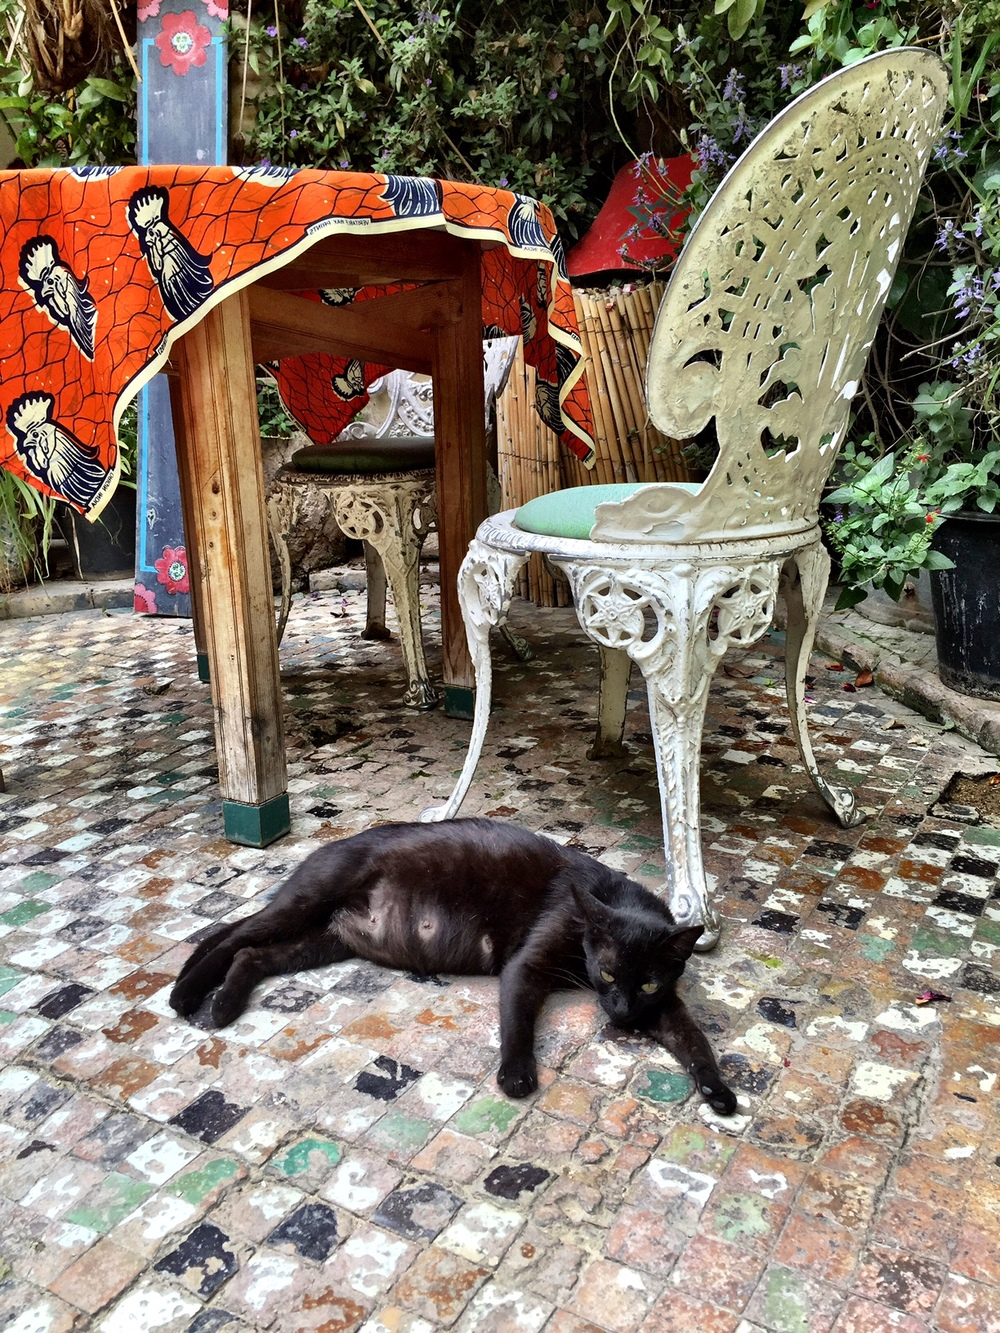 Madrigal lounges in the courtyard by a table. She has since given birth to a litter of kittens